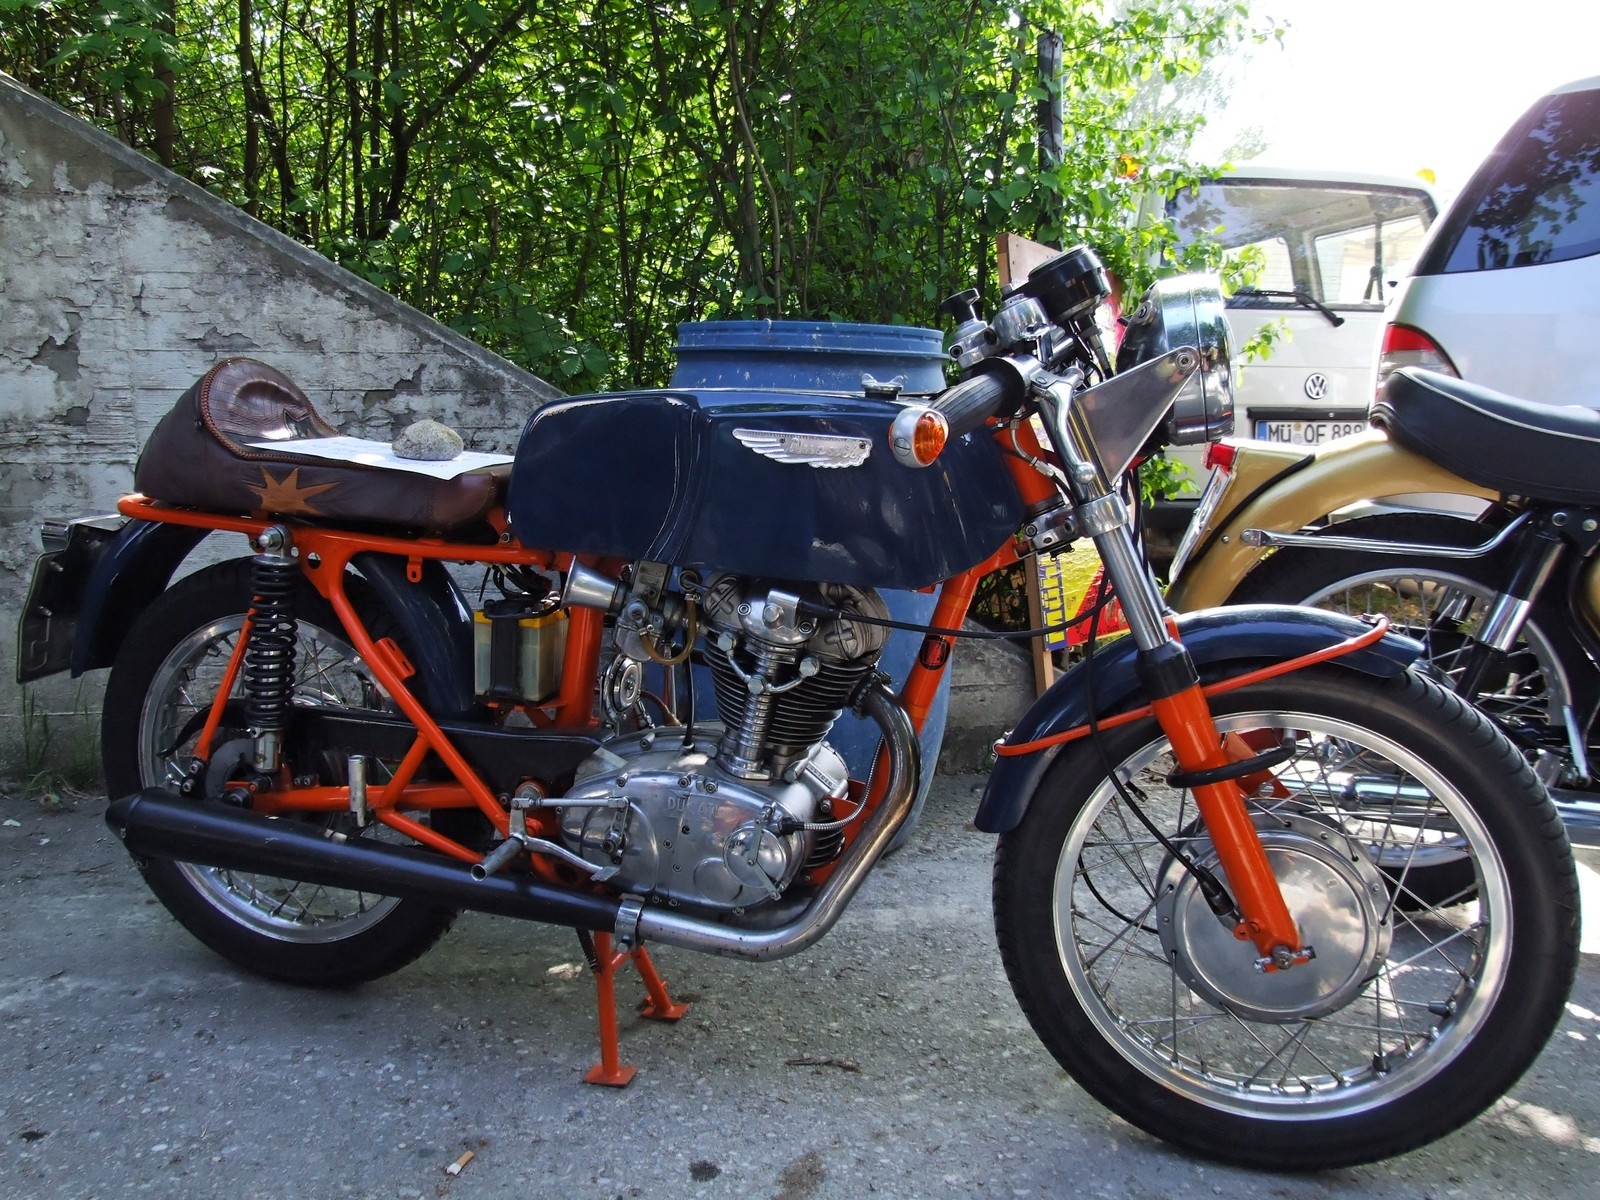 Ducati 250 Mark 3 1972 images #10225